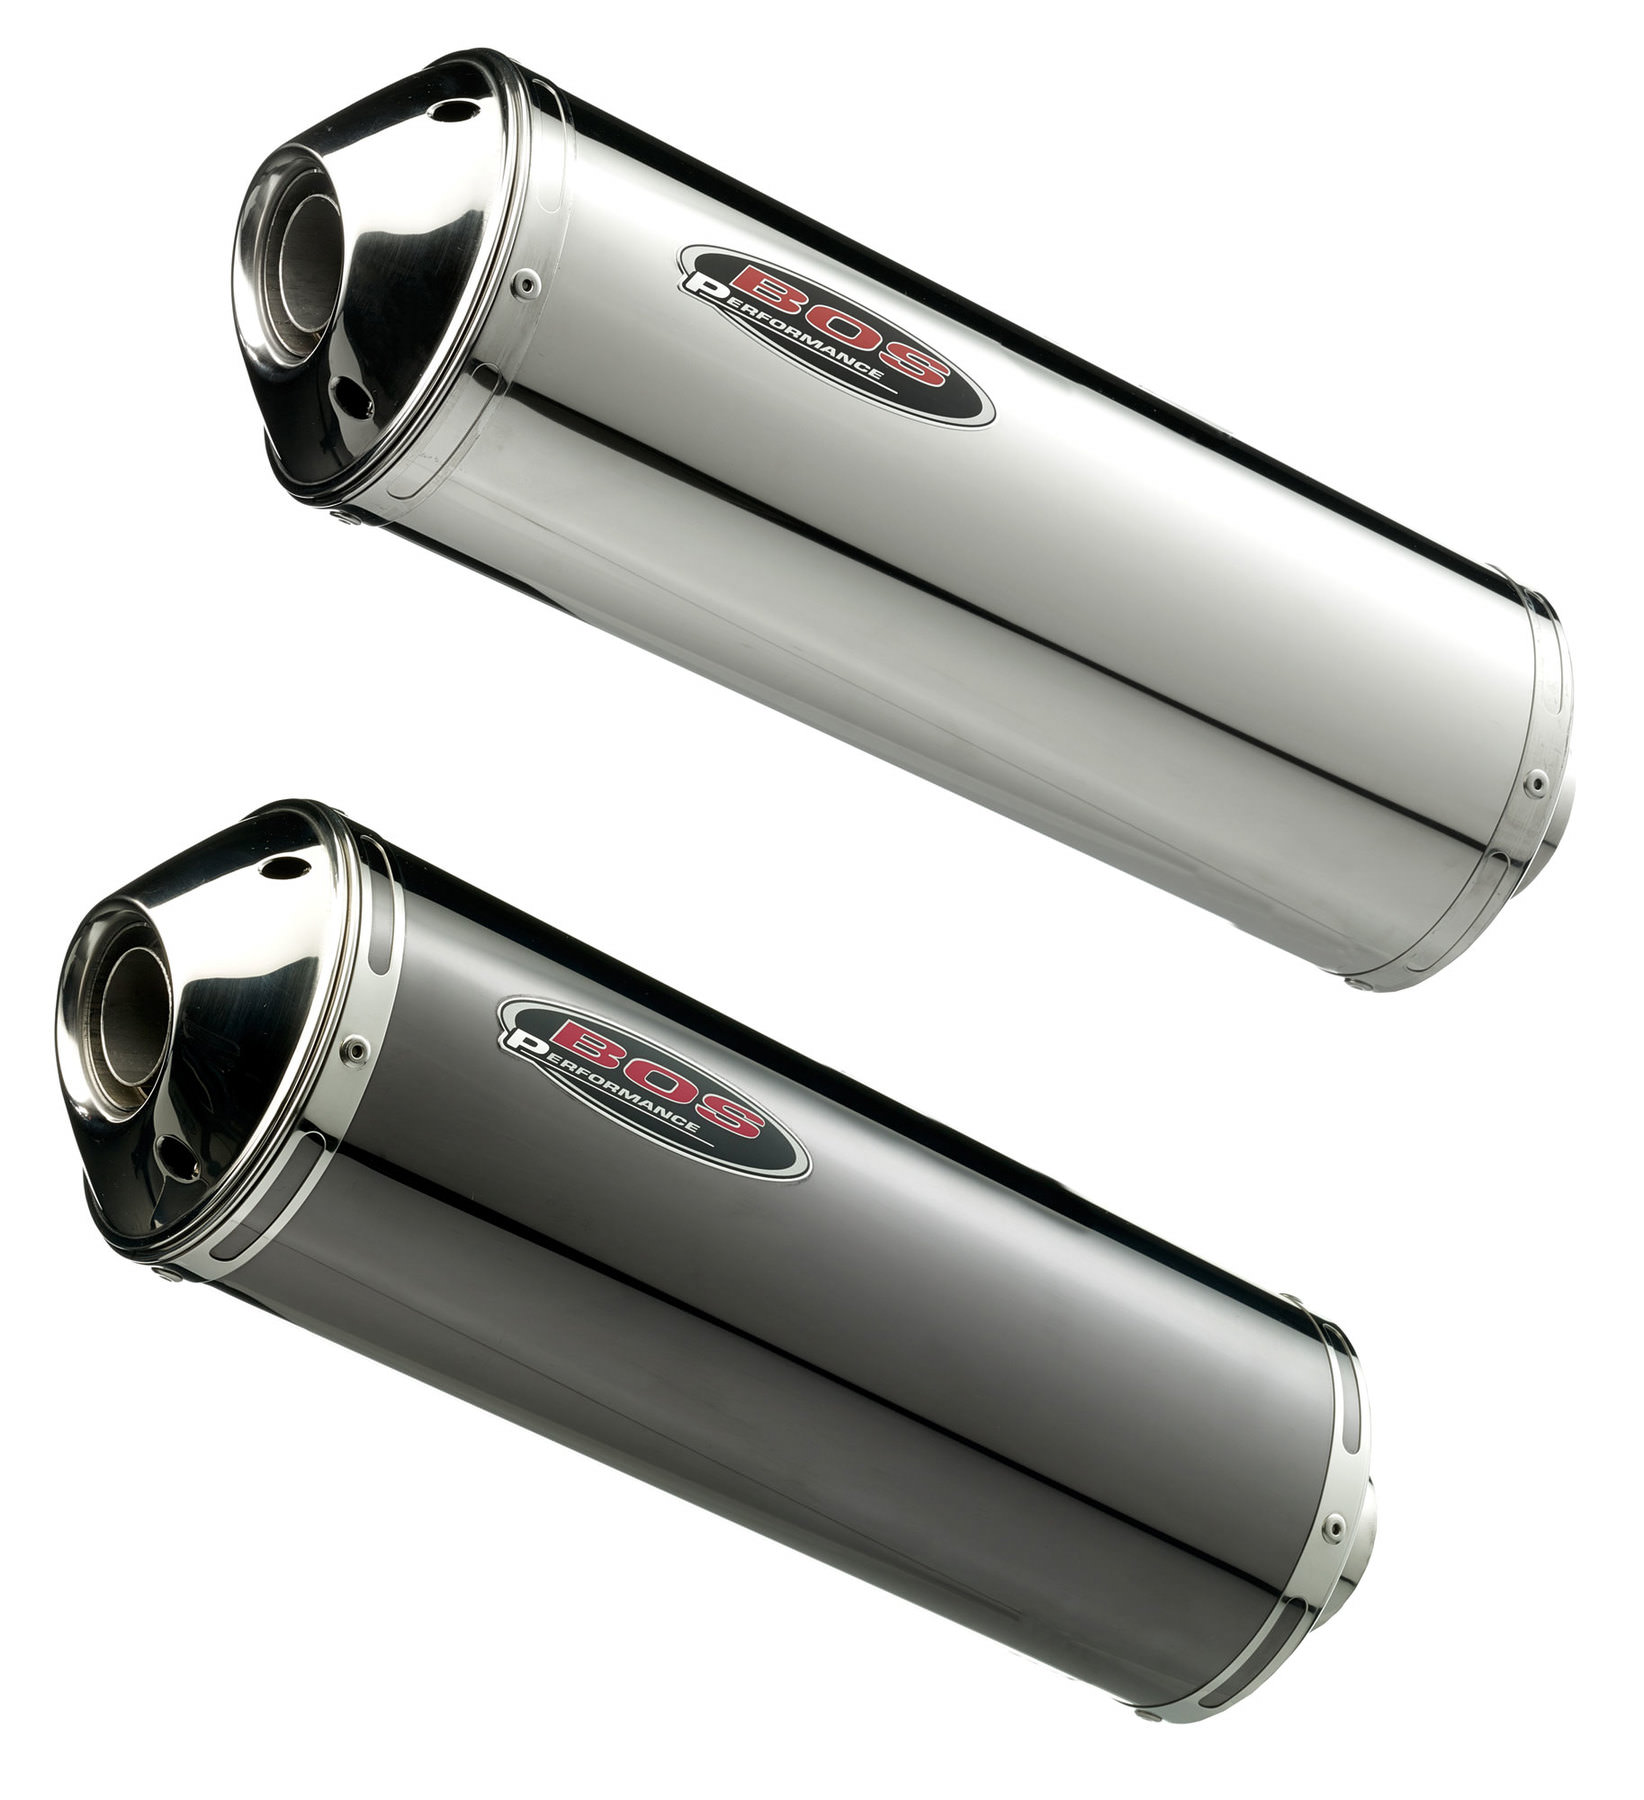 Buy Bos Exhaust Louis Motorcycle Clothing And Technology